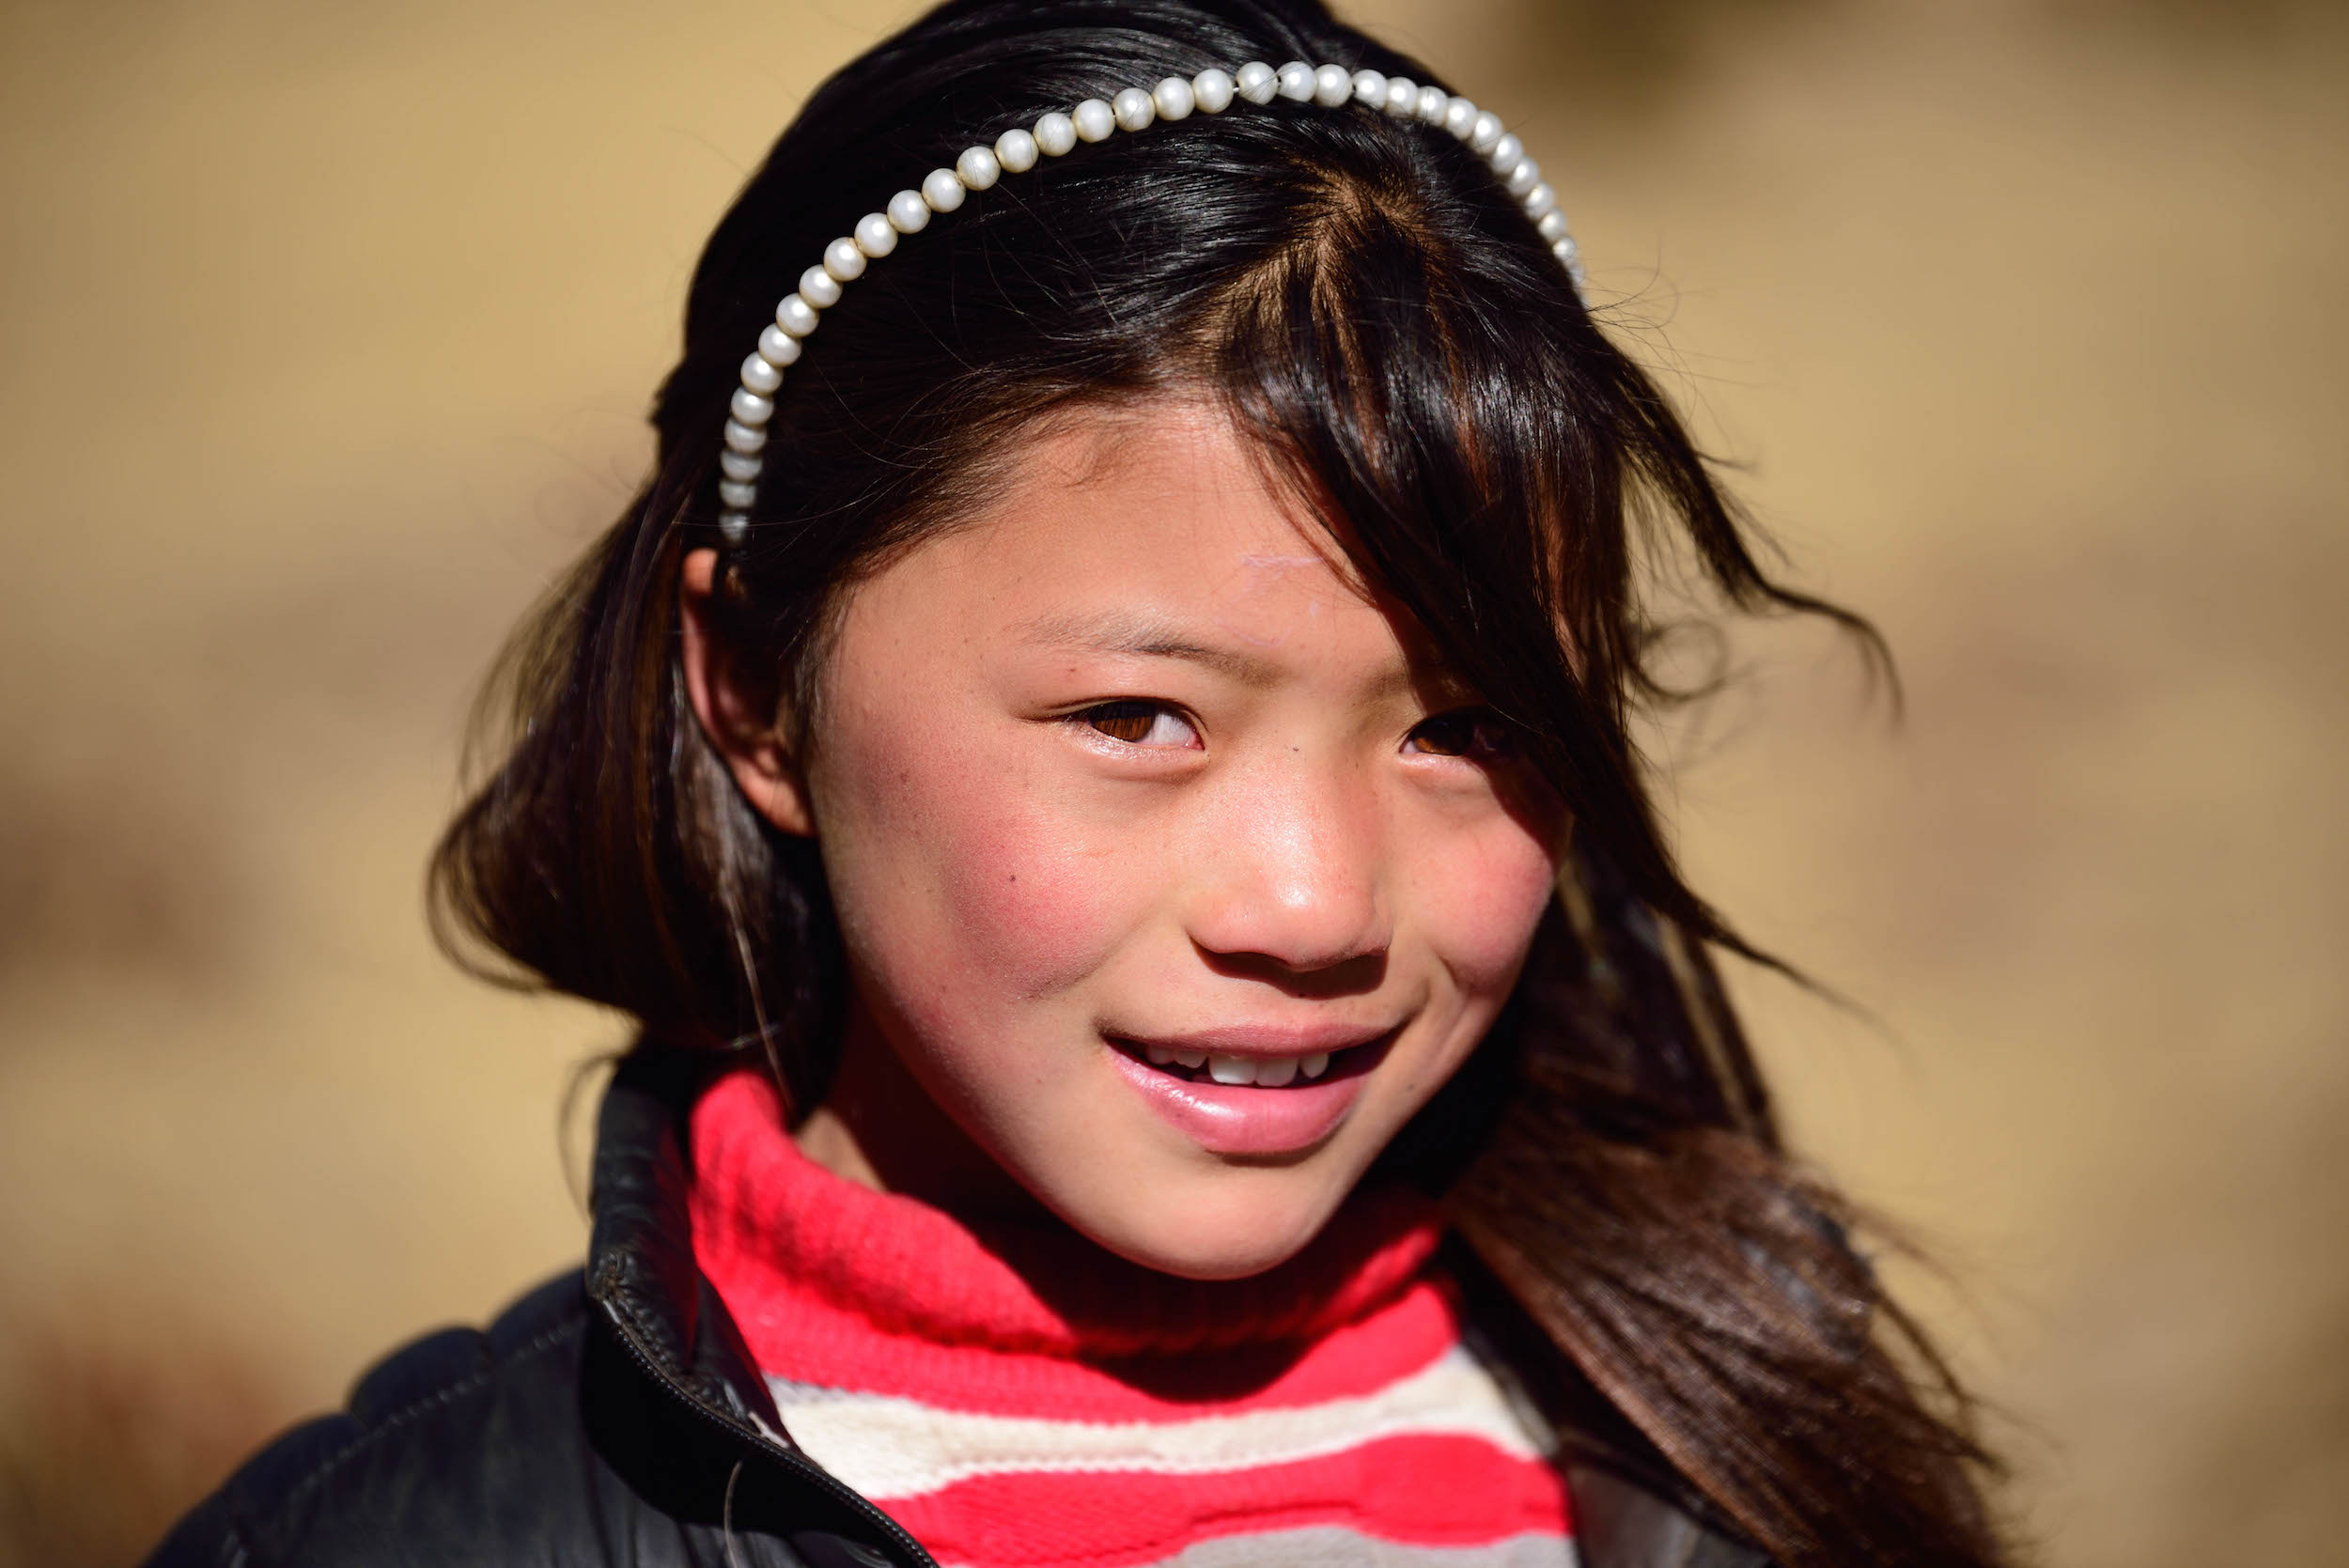 Girl in a stripy top with a faux pearl headband smiles at the camera